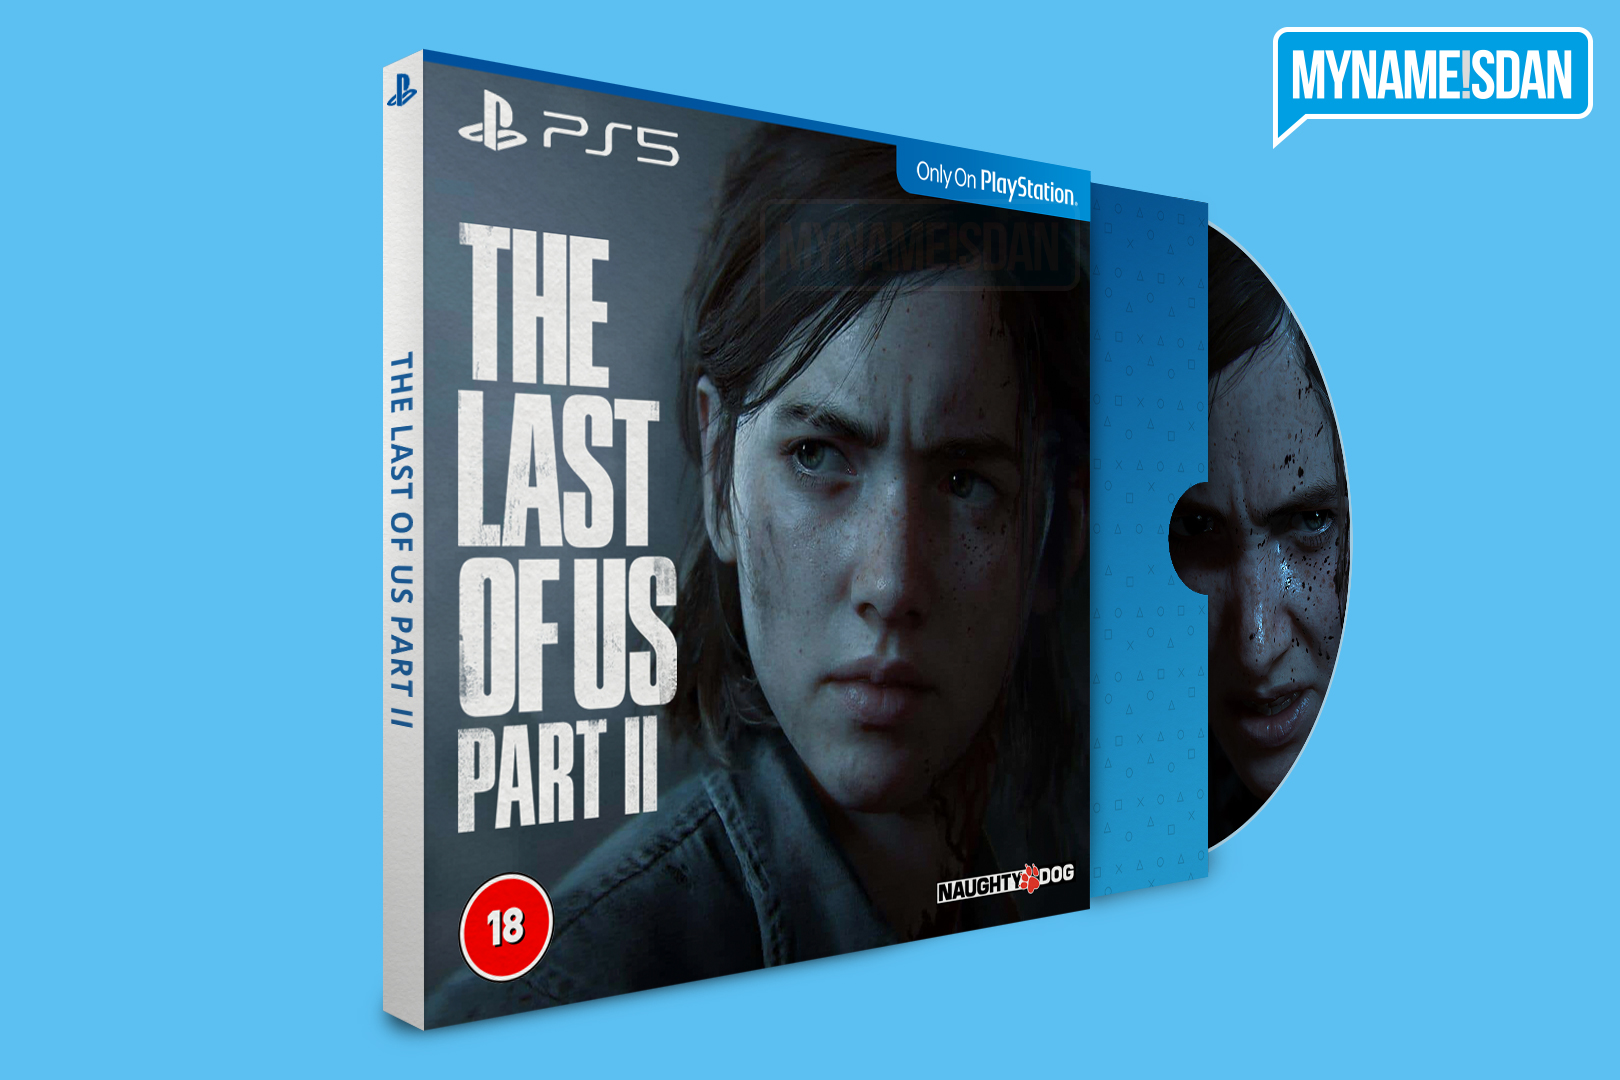 PS5 Cardboard Game Case Concept Design with Spine